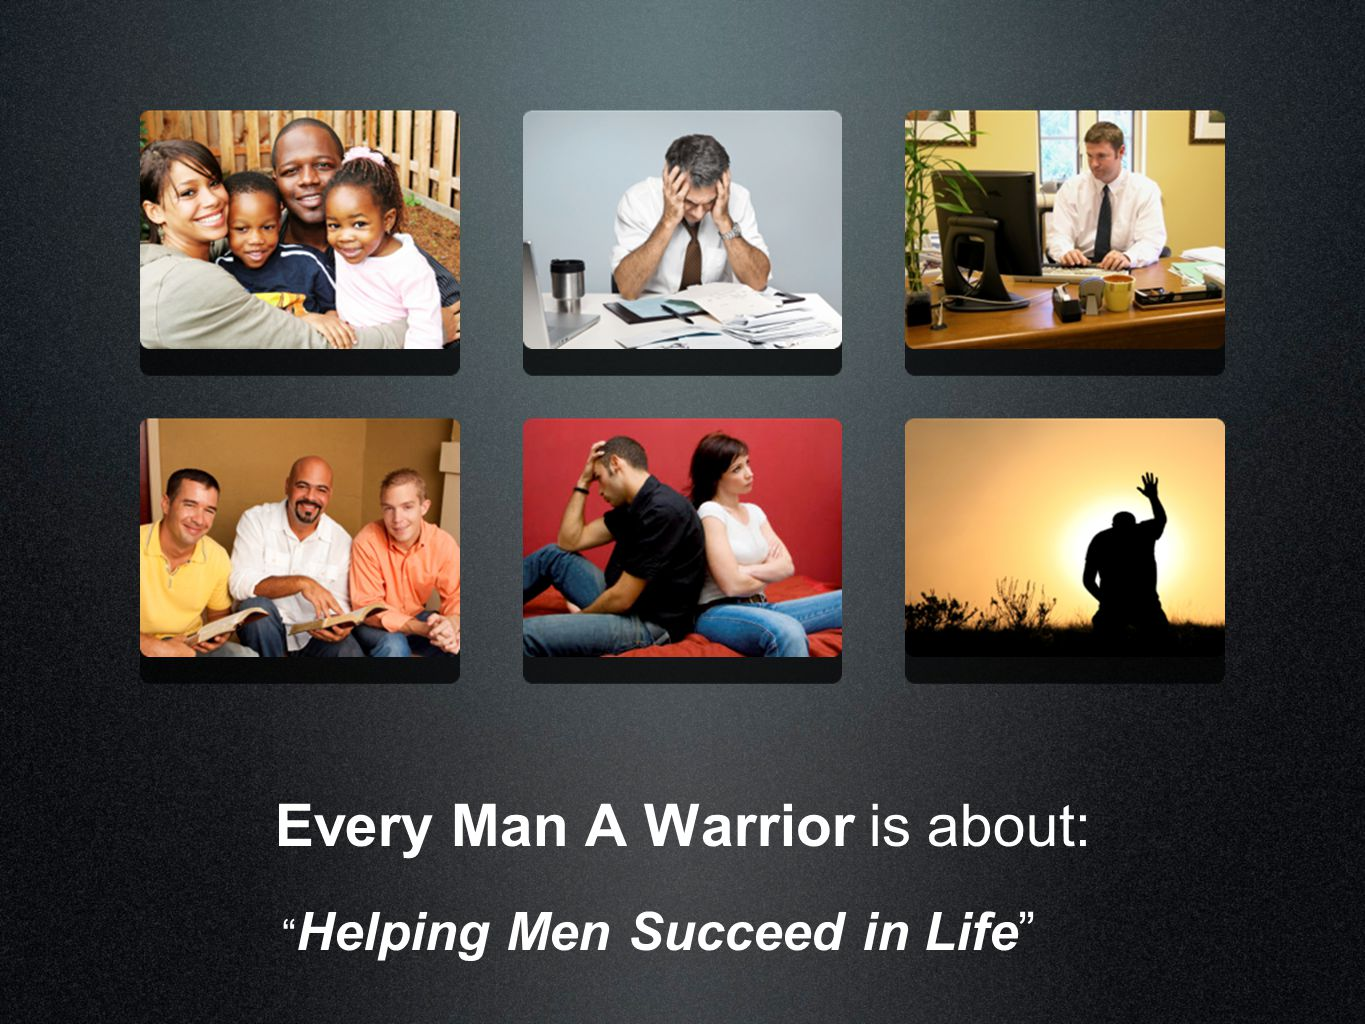 Every Man A Warrior is about: